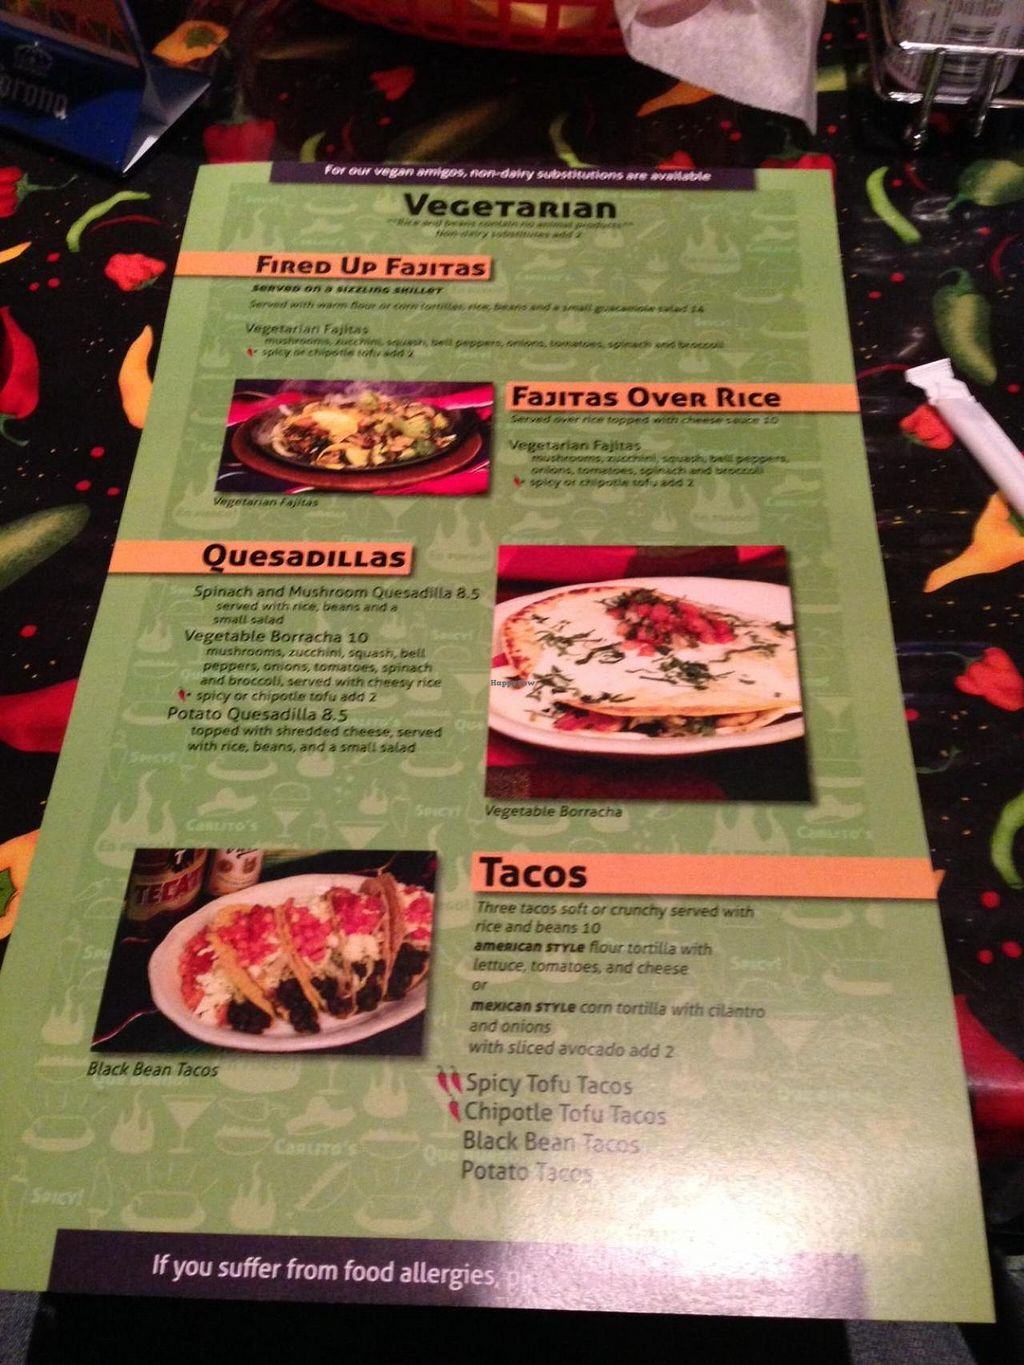 """Photo of Carlito's Mexican Bar and Grill  by <a href=""""/members/profile/TheVeganVagabond"""">TheVeganVagabond</a> <br/>Side one of the vegetarian/vegan menu <br/> July 8, 2014  - <a href='/contact/abuse/image/48681/73565'>Report</a>"""